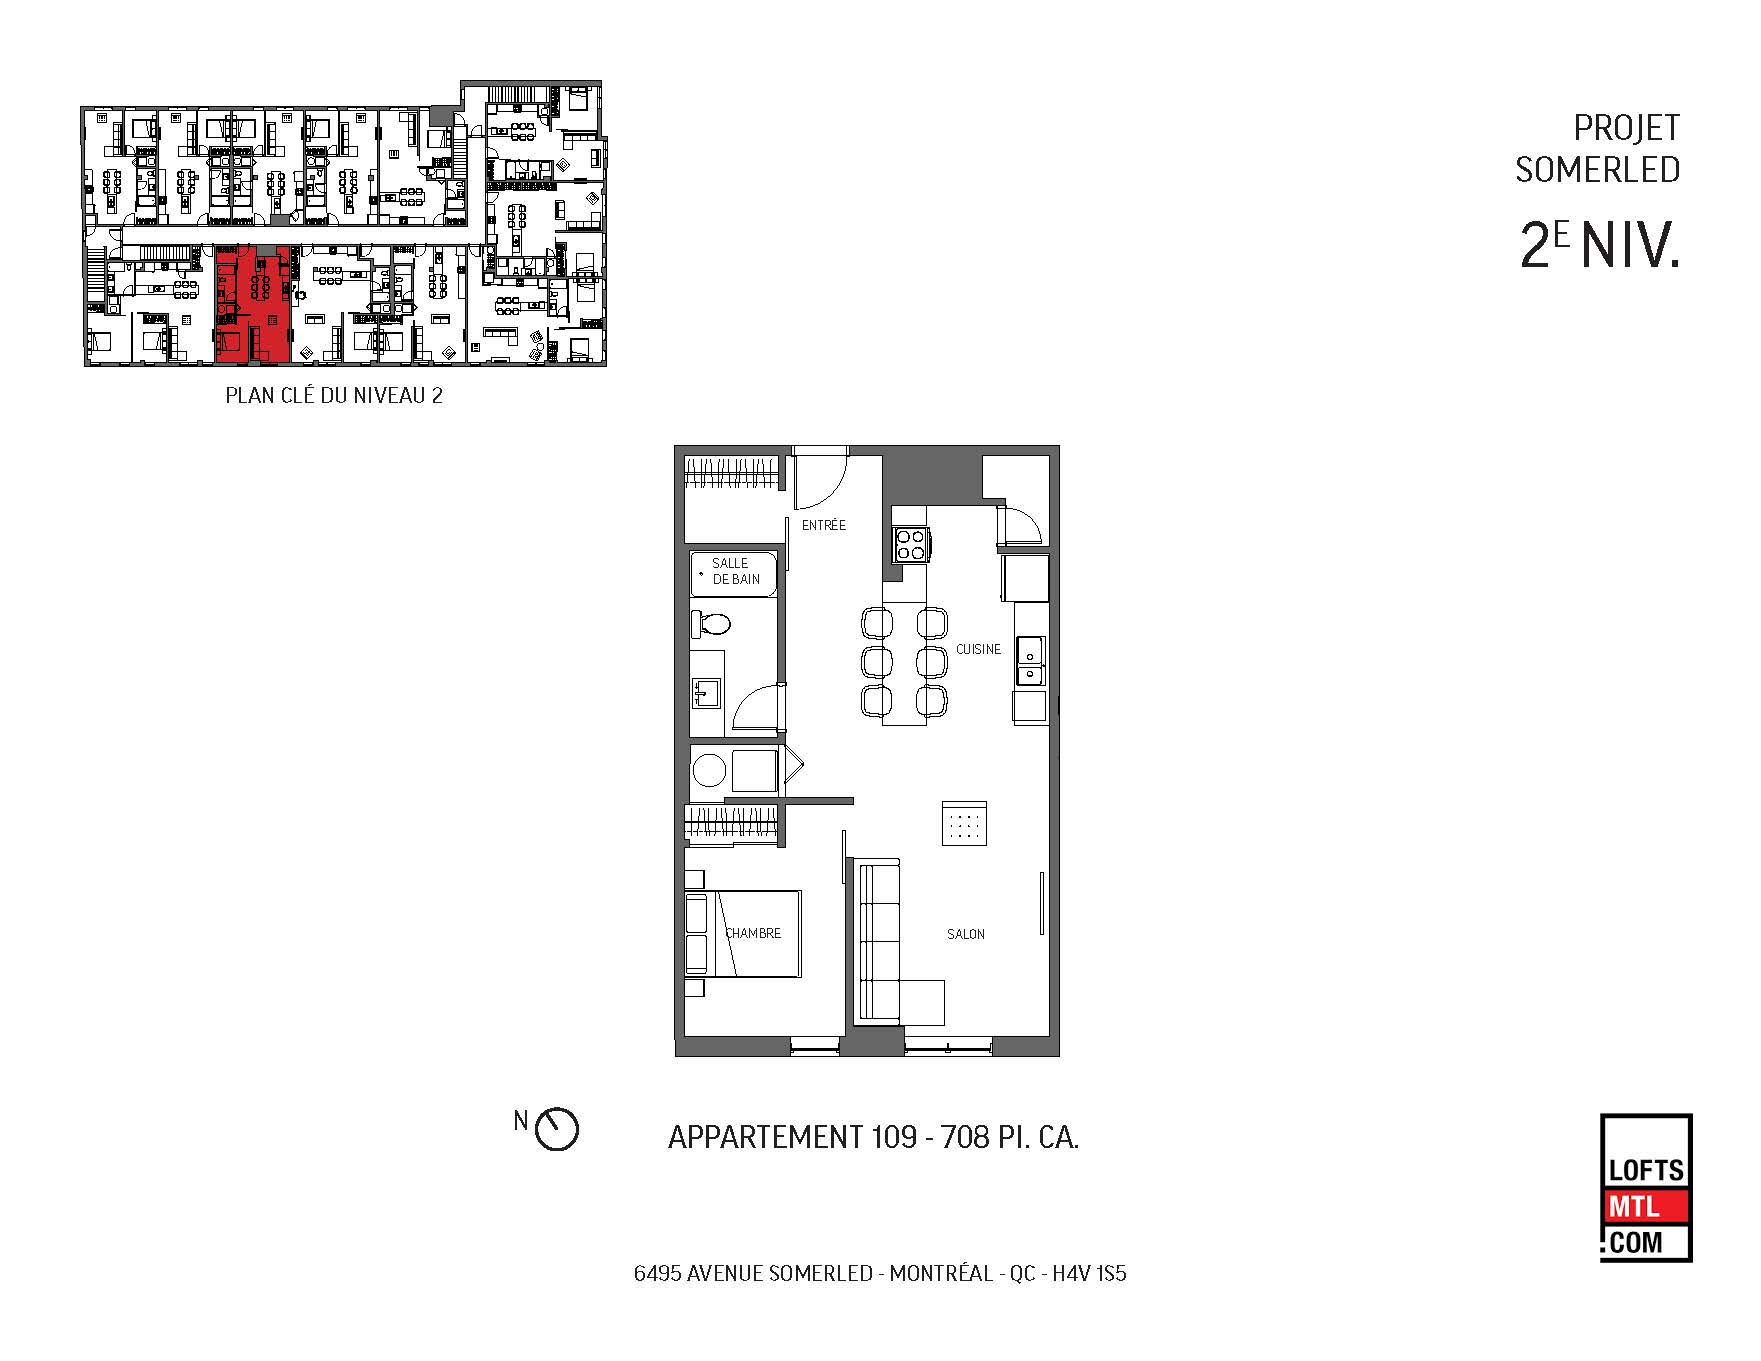 Plans appartements vectoriel Somerled_Page_09.jpg